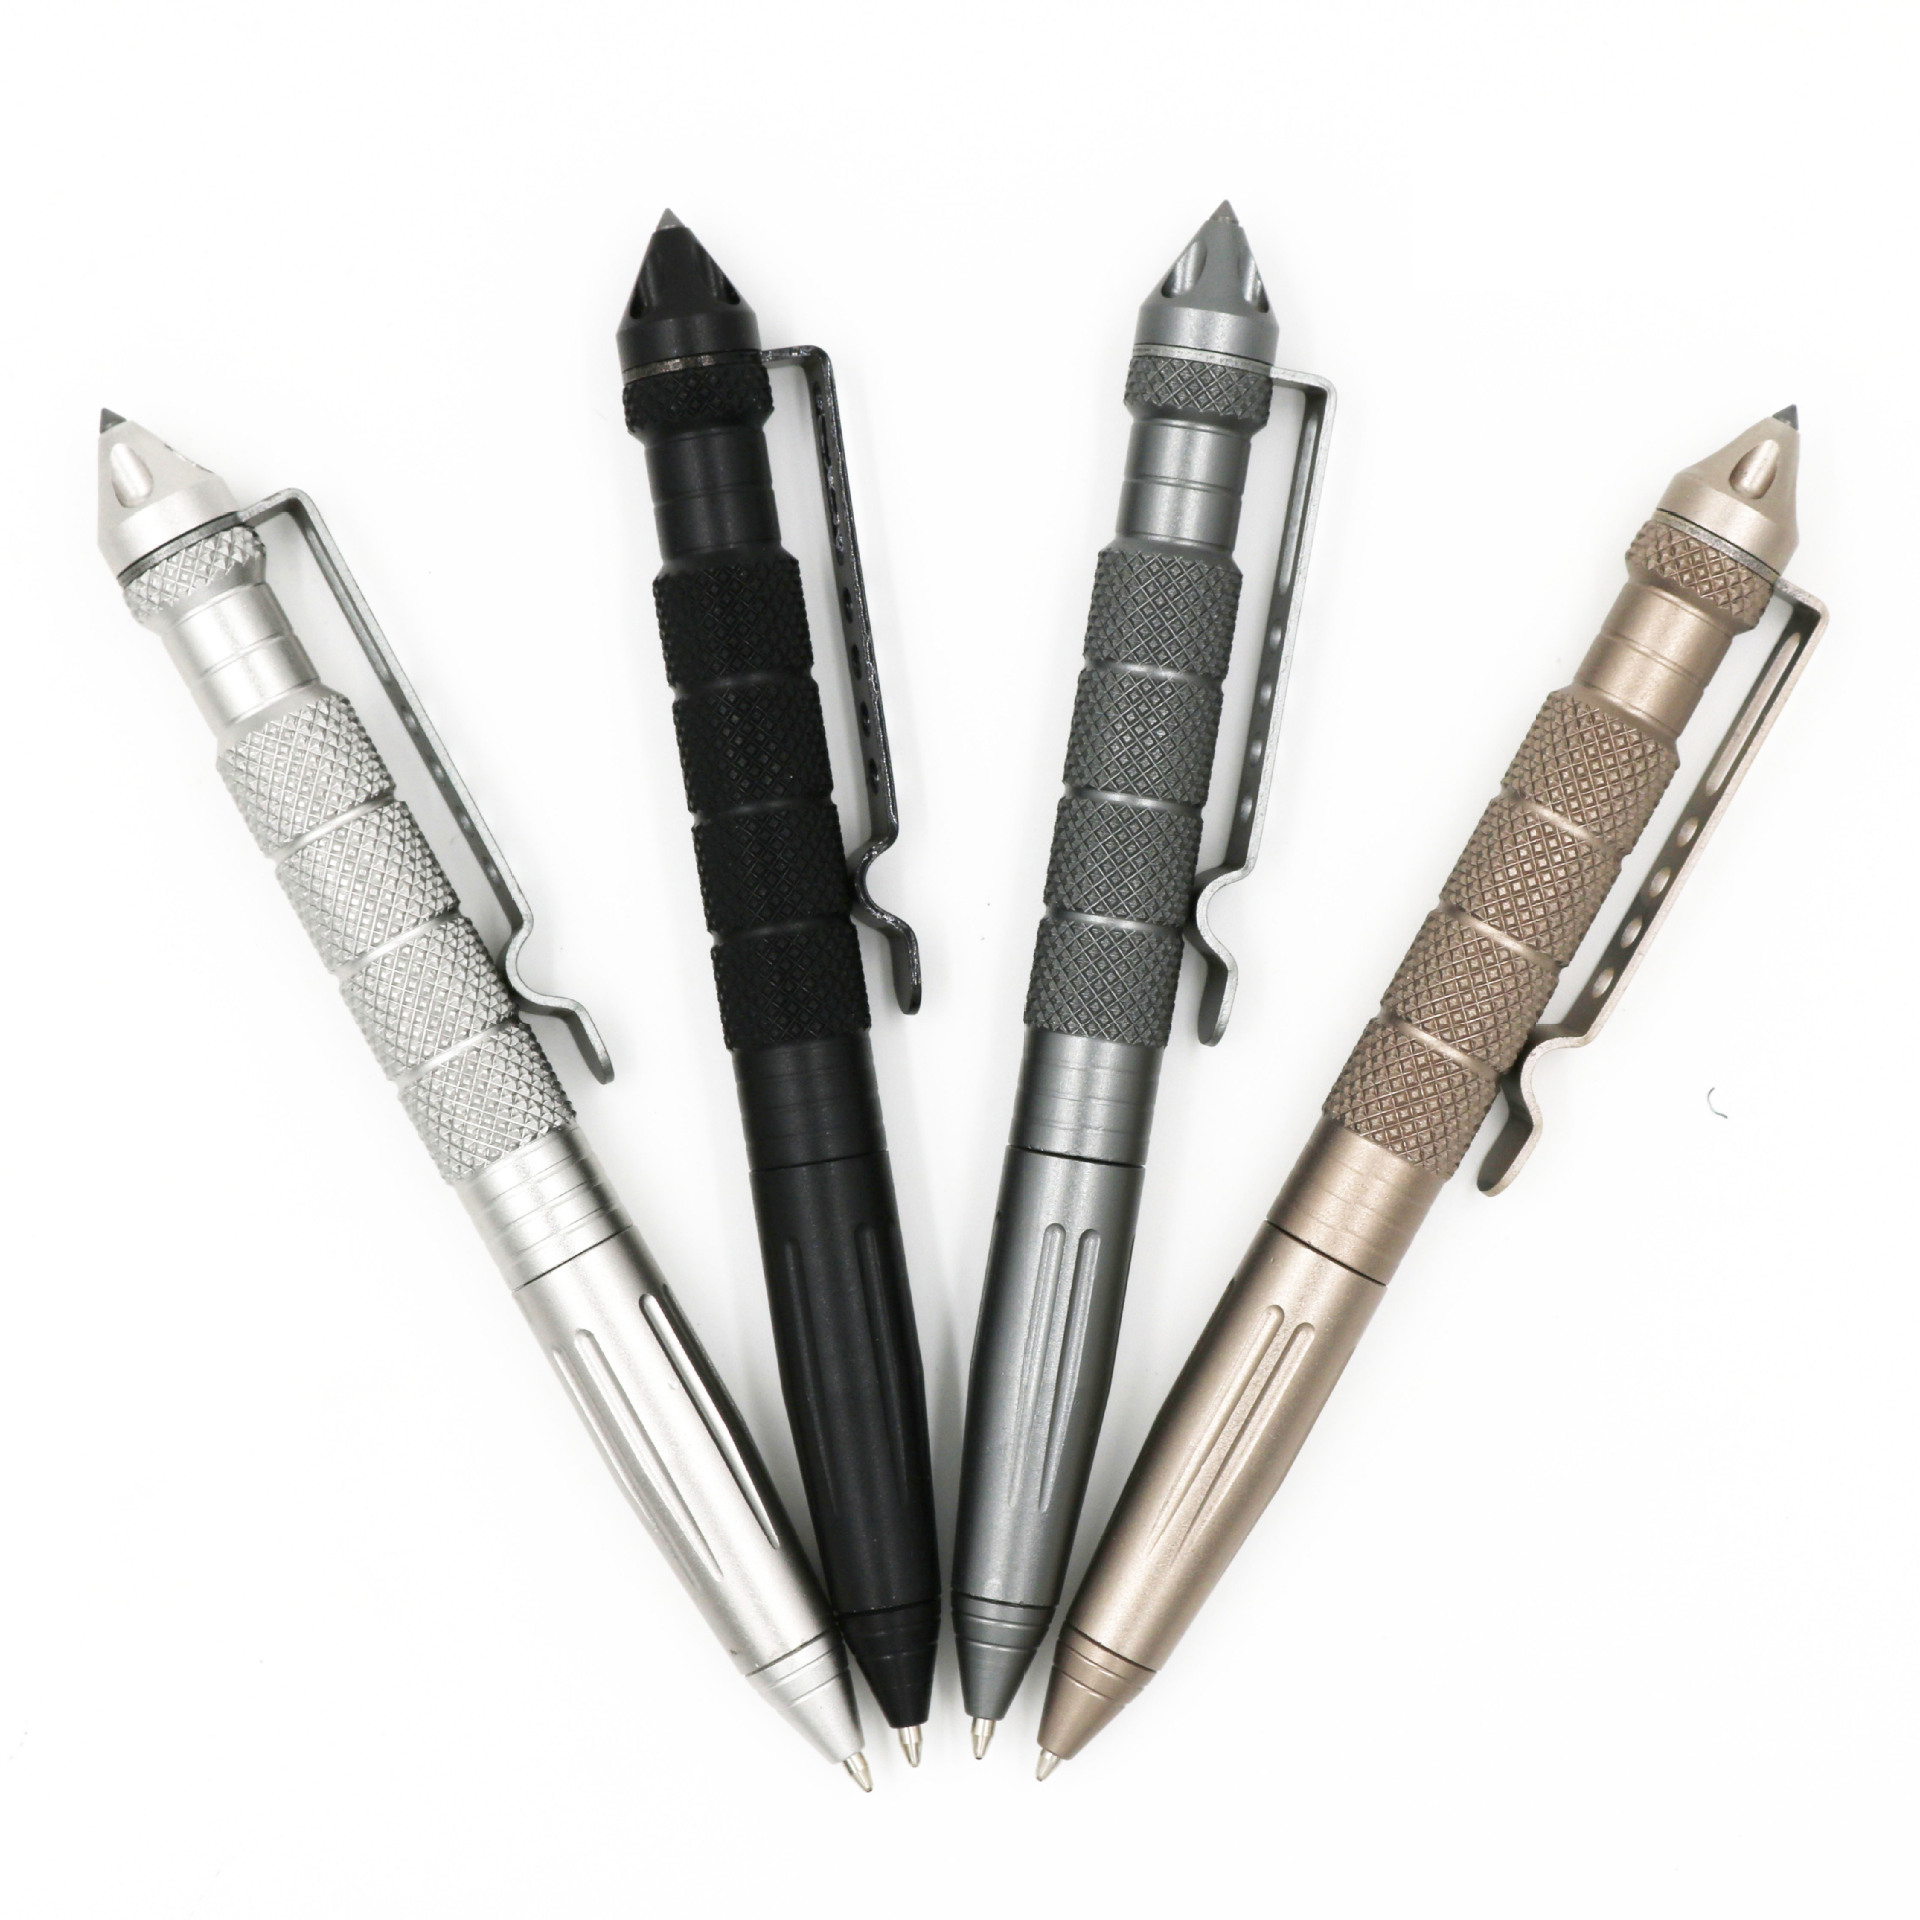 Details about  /UK Aluminum Tactical Pen Glass Breaker Writing Survival Outdoor Cool Tool